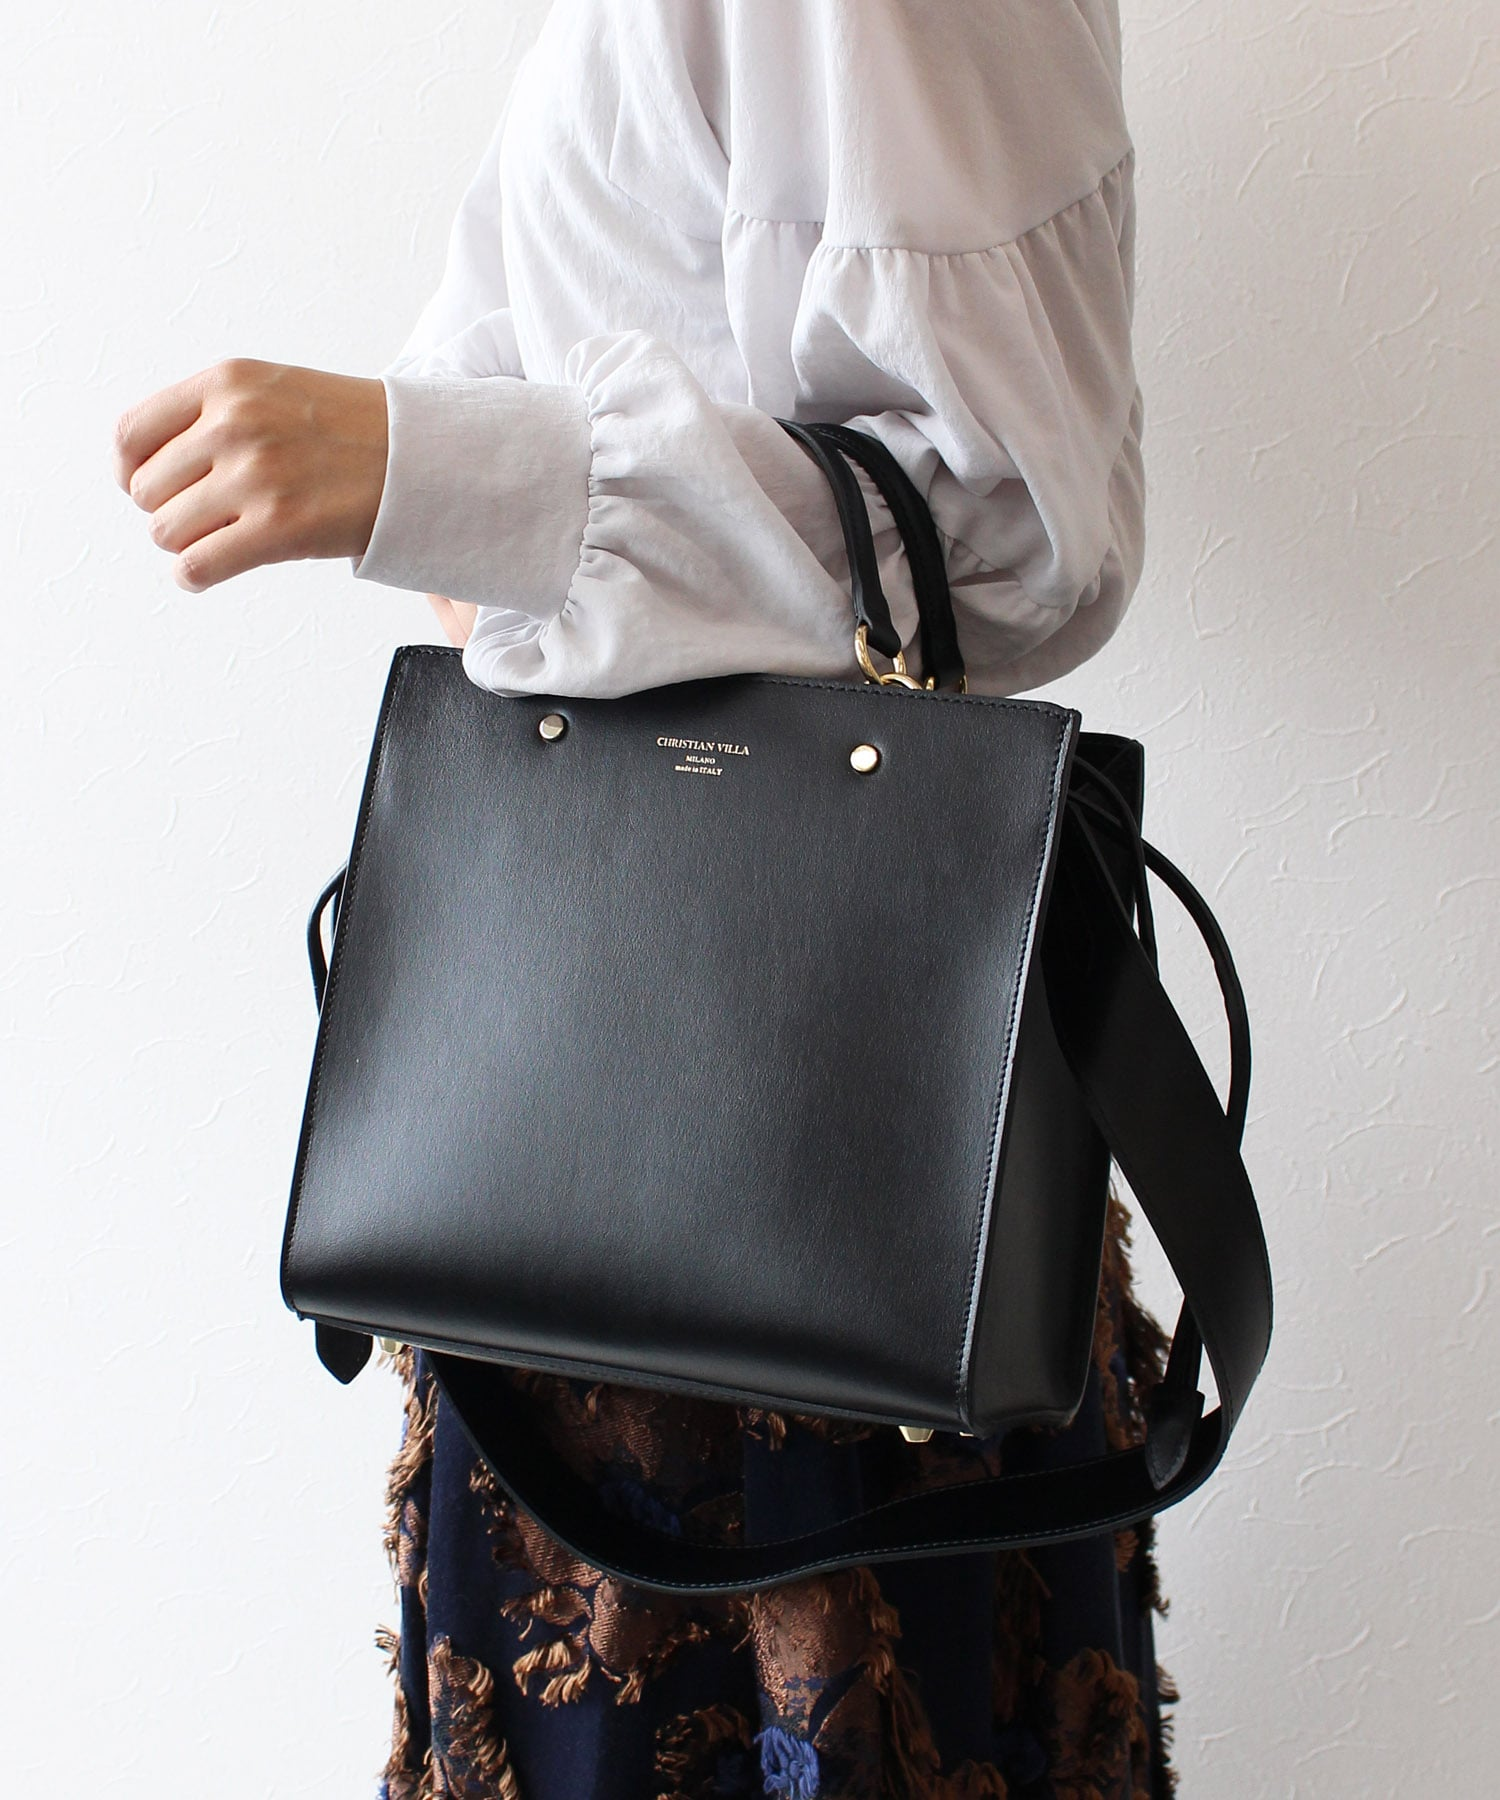 【 CHRISTIAN VILLA / クリスチャン ヴィラ 】★Calf Leather with Pouch  SQ Bag2